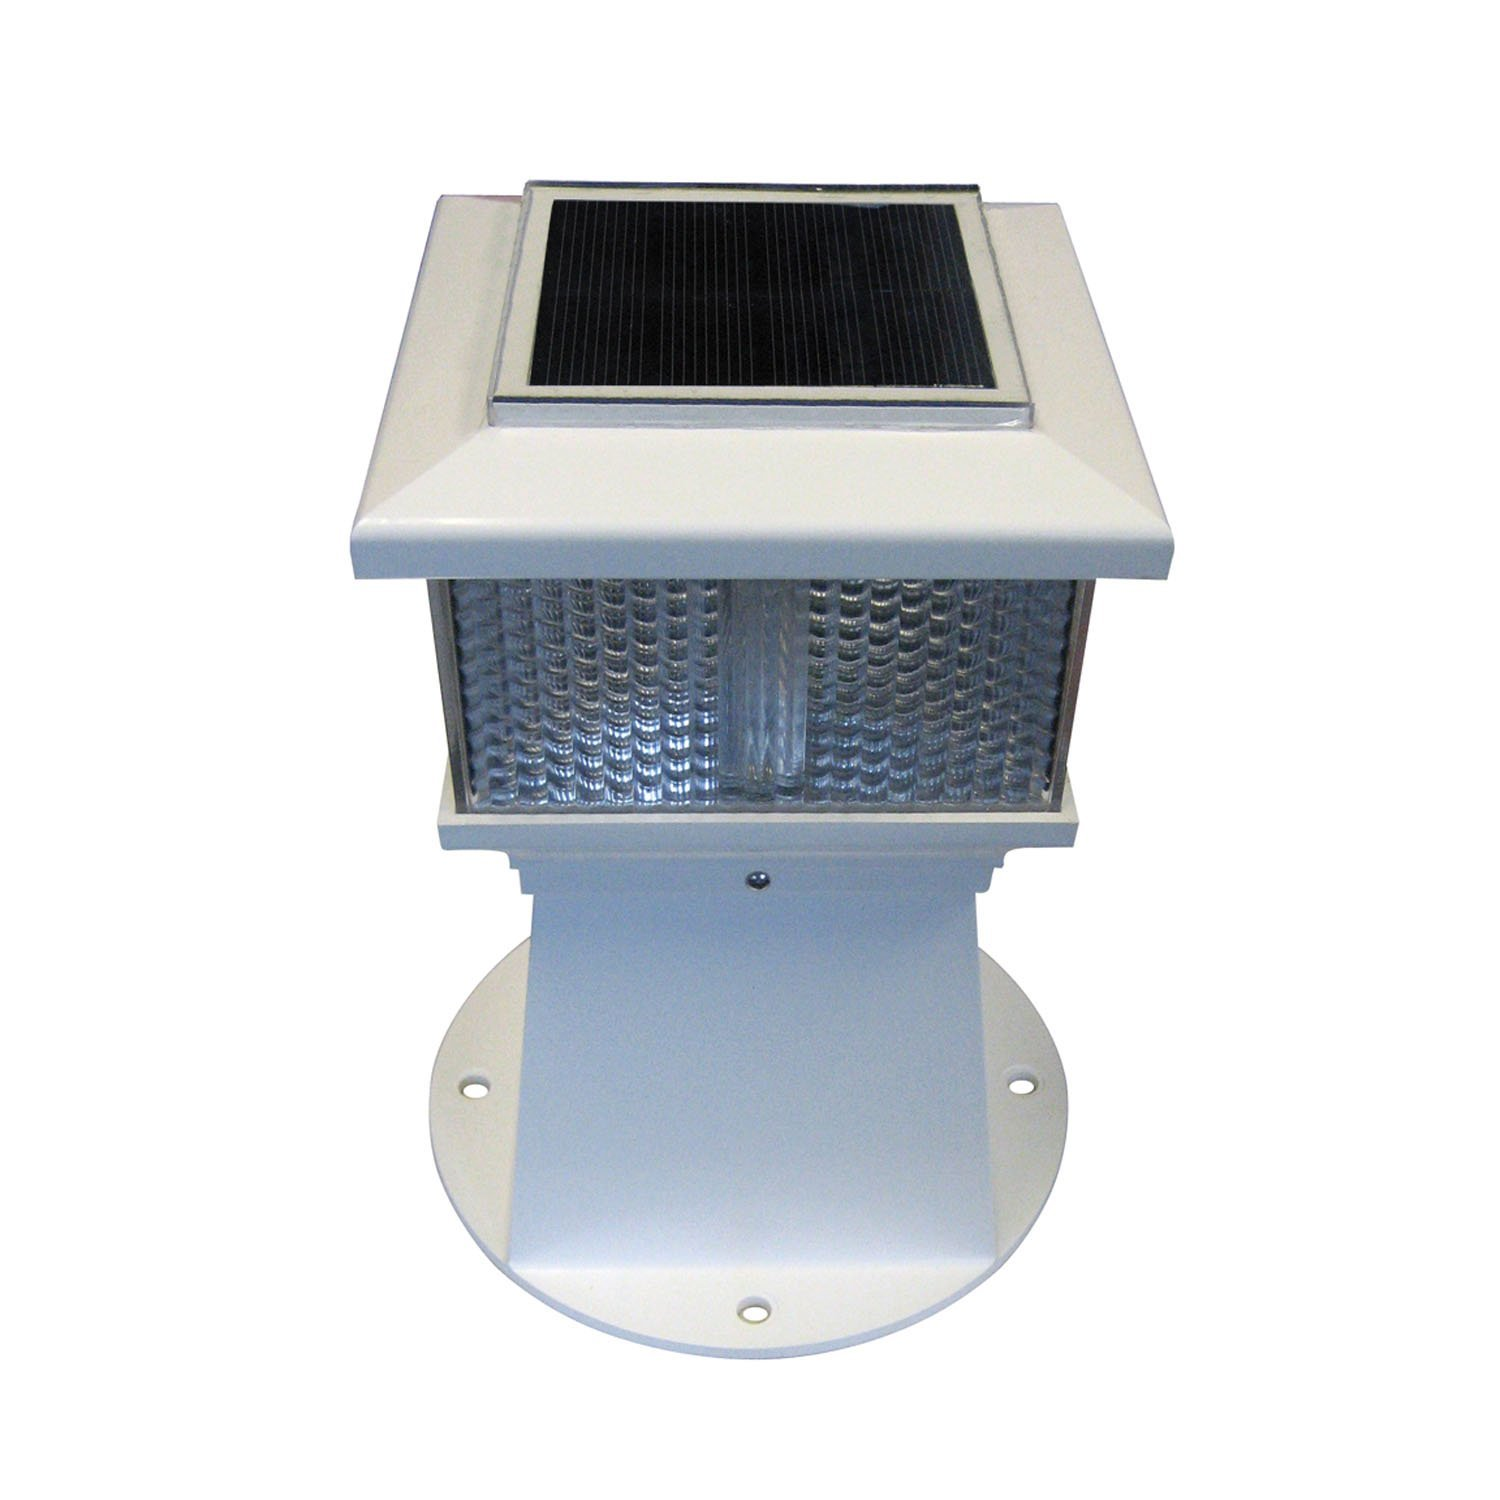 Dock Edge Dock Edge Solar Piling Light electronic consumers by Brandz